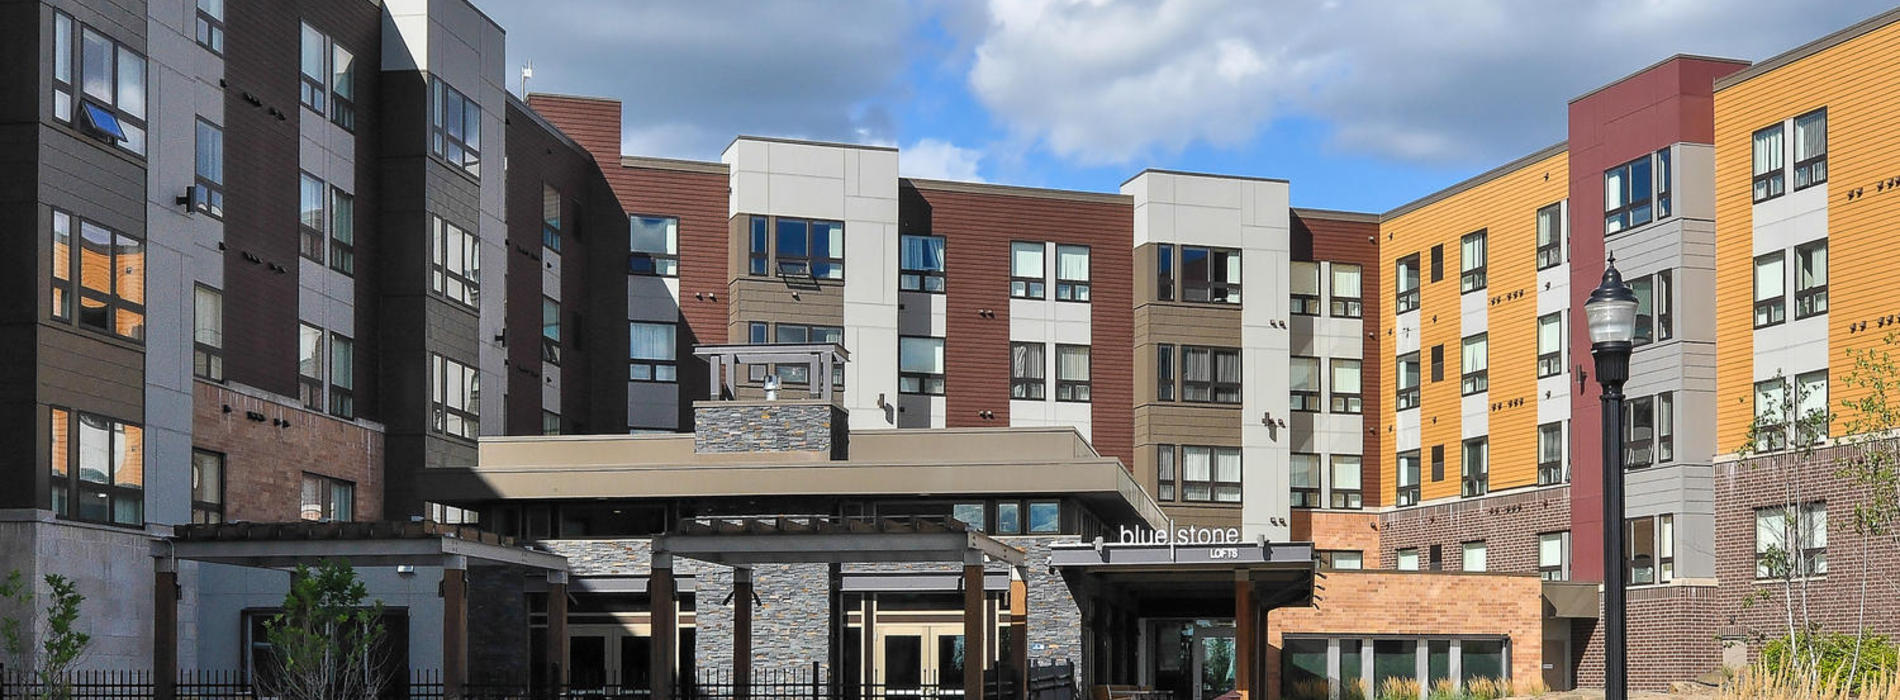 Apartments for rent in duluth mn bluestone lofts home - 2 bedroom apartments for rent in duluth mn ...